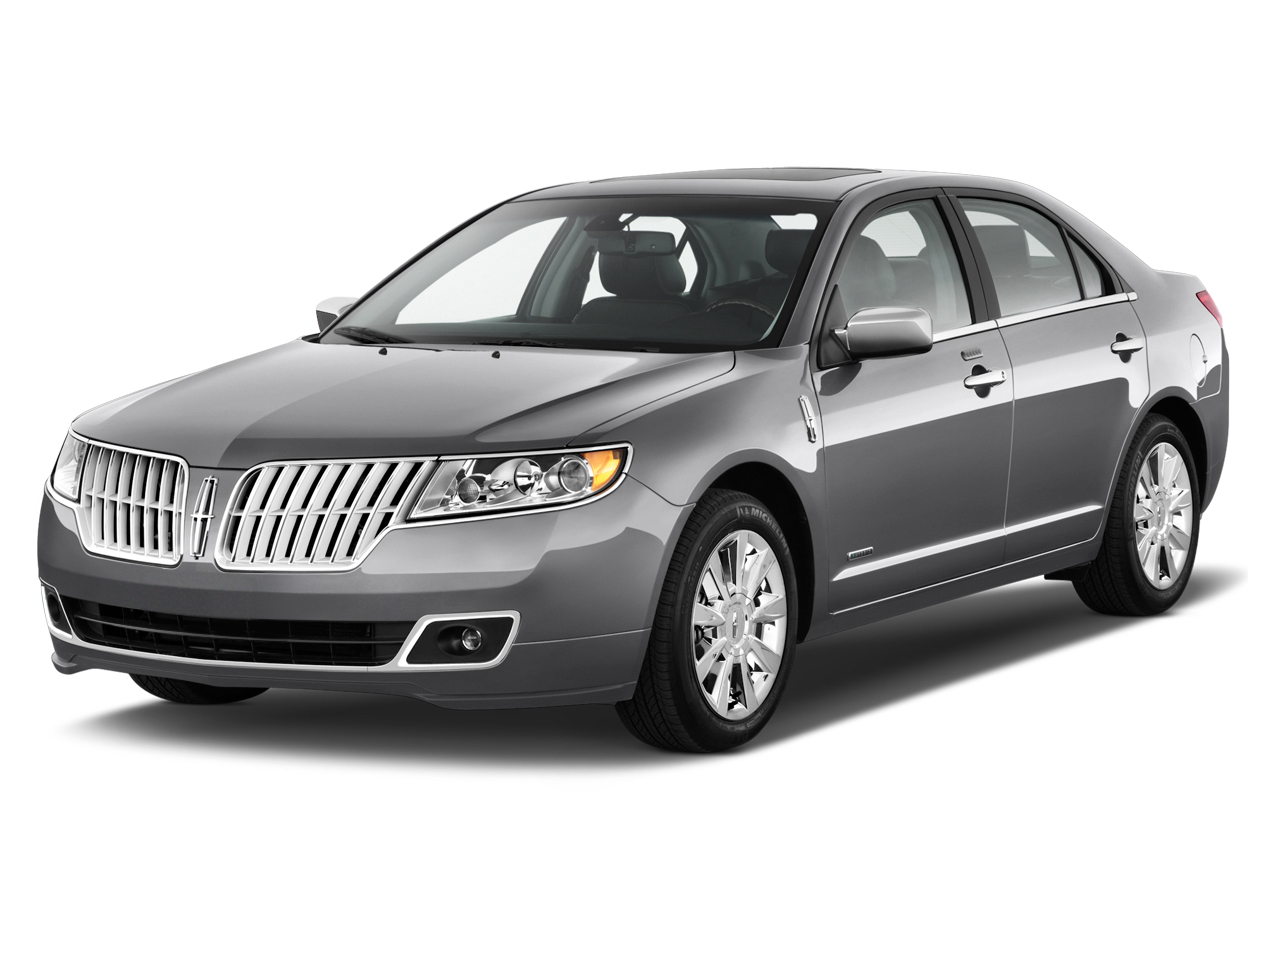 2012 Lincoln Mkz Hybrid Review >> 2012 Lincoln MKZ Review and News - MotorAuthority